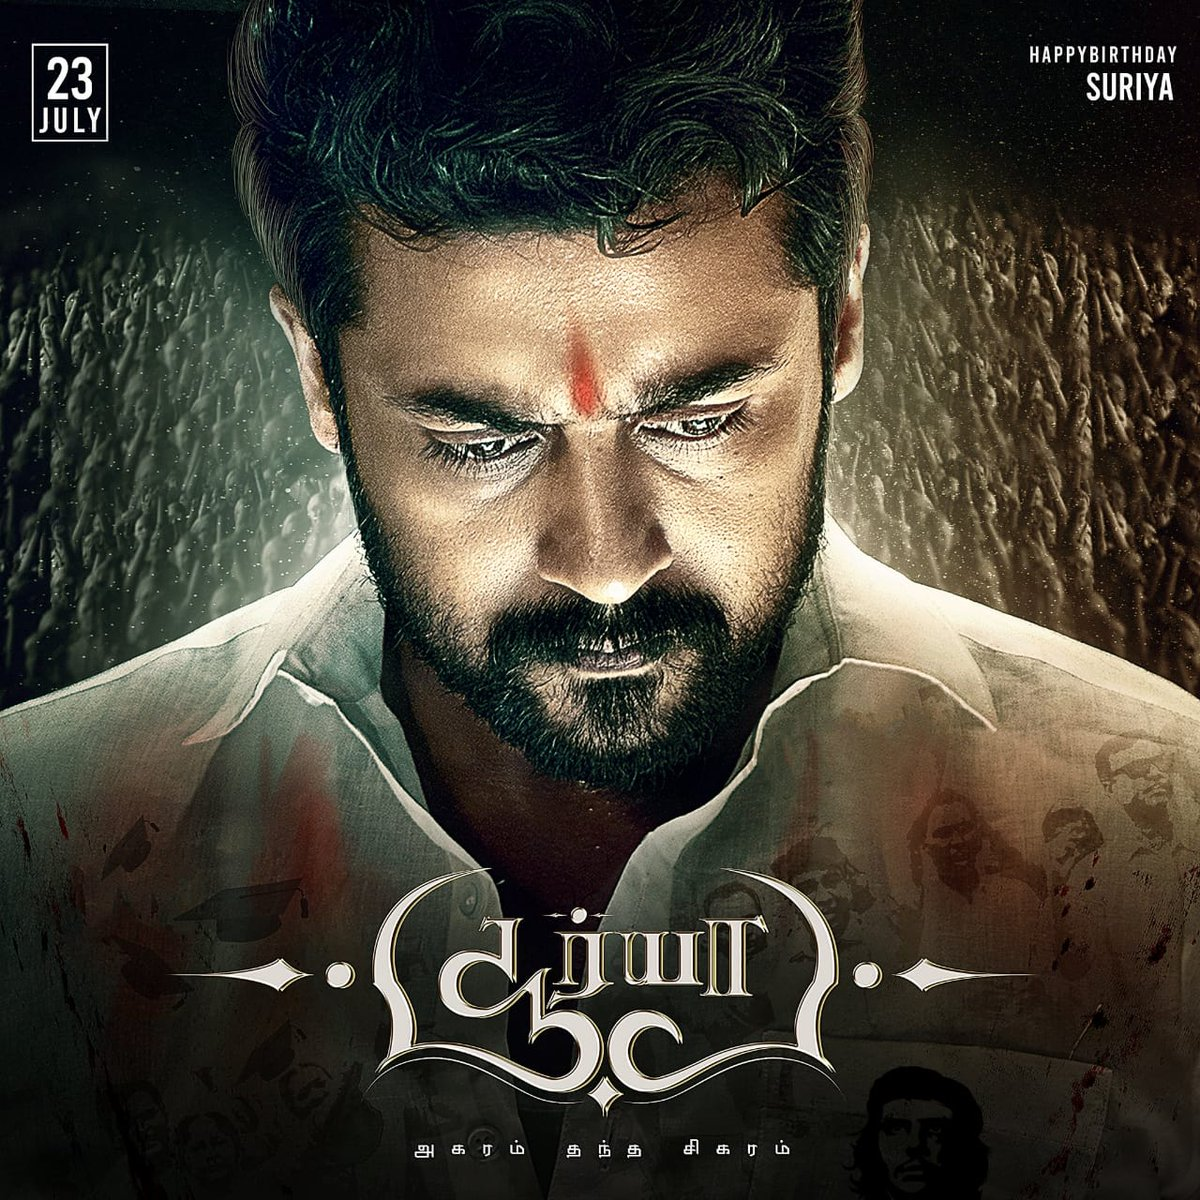 • This is huge   actors, producers, film trackers,  theatre owners & fans are celebrating with CDP   #SuriyaBirthdayCDP<br>http://pic.twitter.com/dsL5krae39